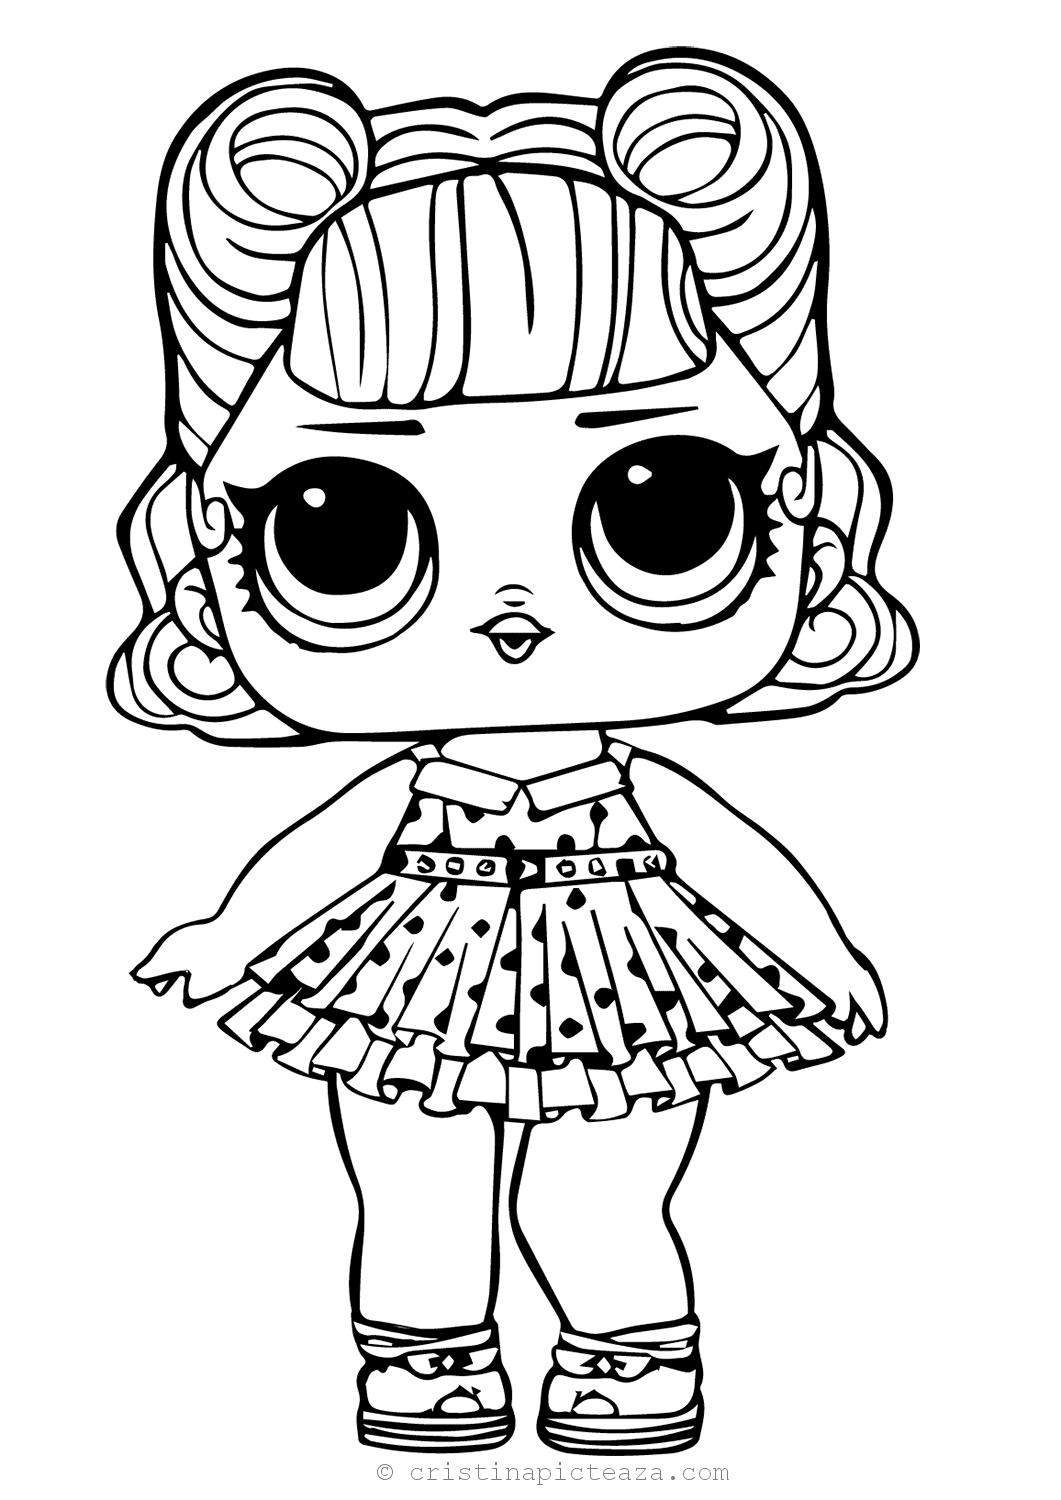 doll colouring pages lol coloring pages lol dolls for coloring and painting pages doll colouring